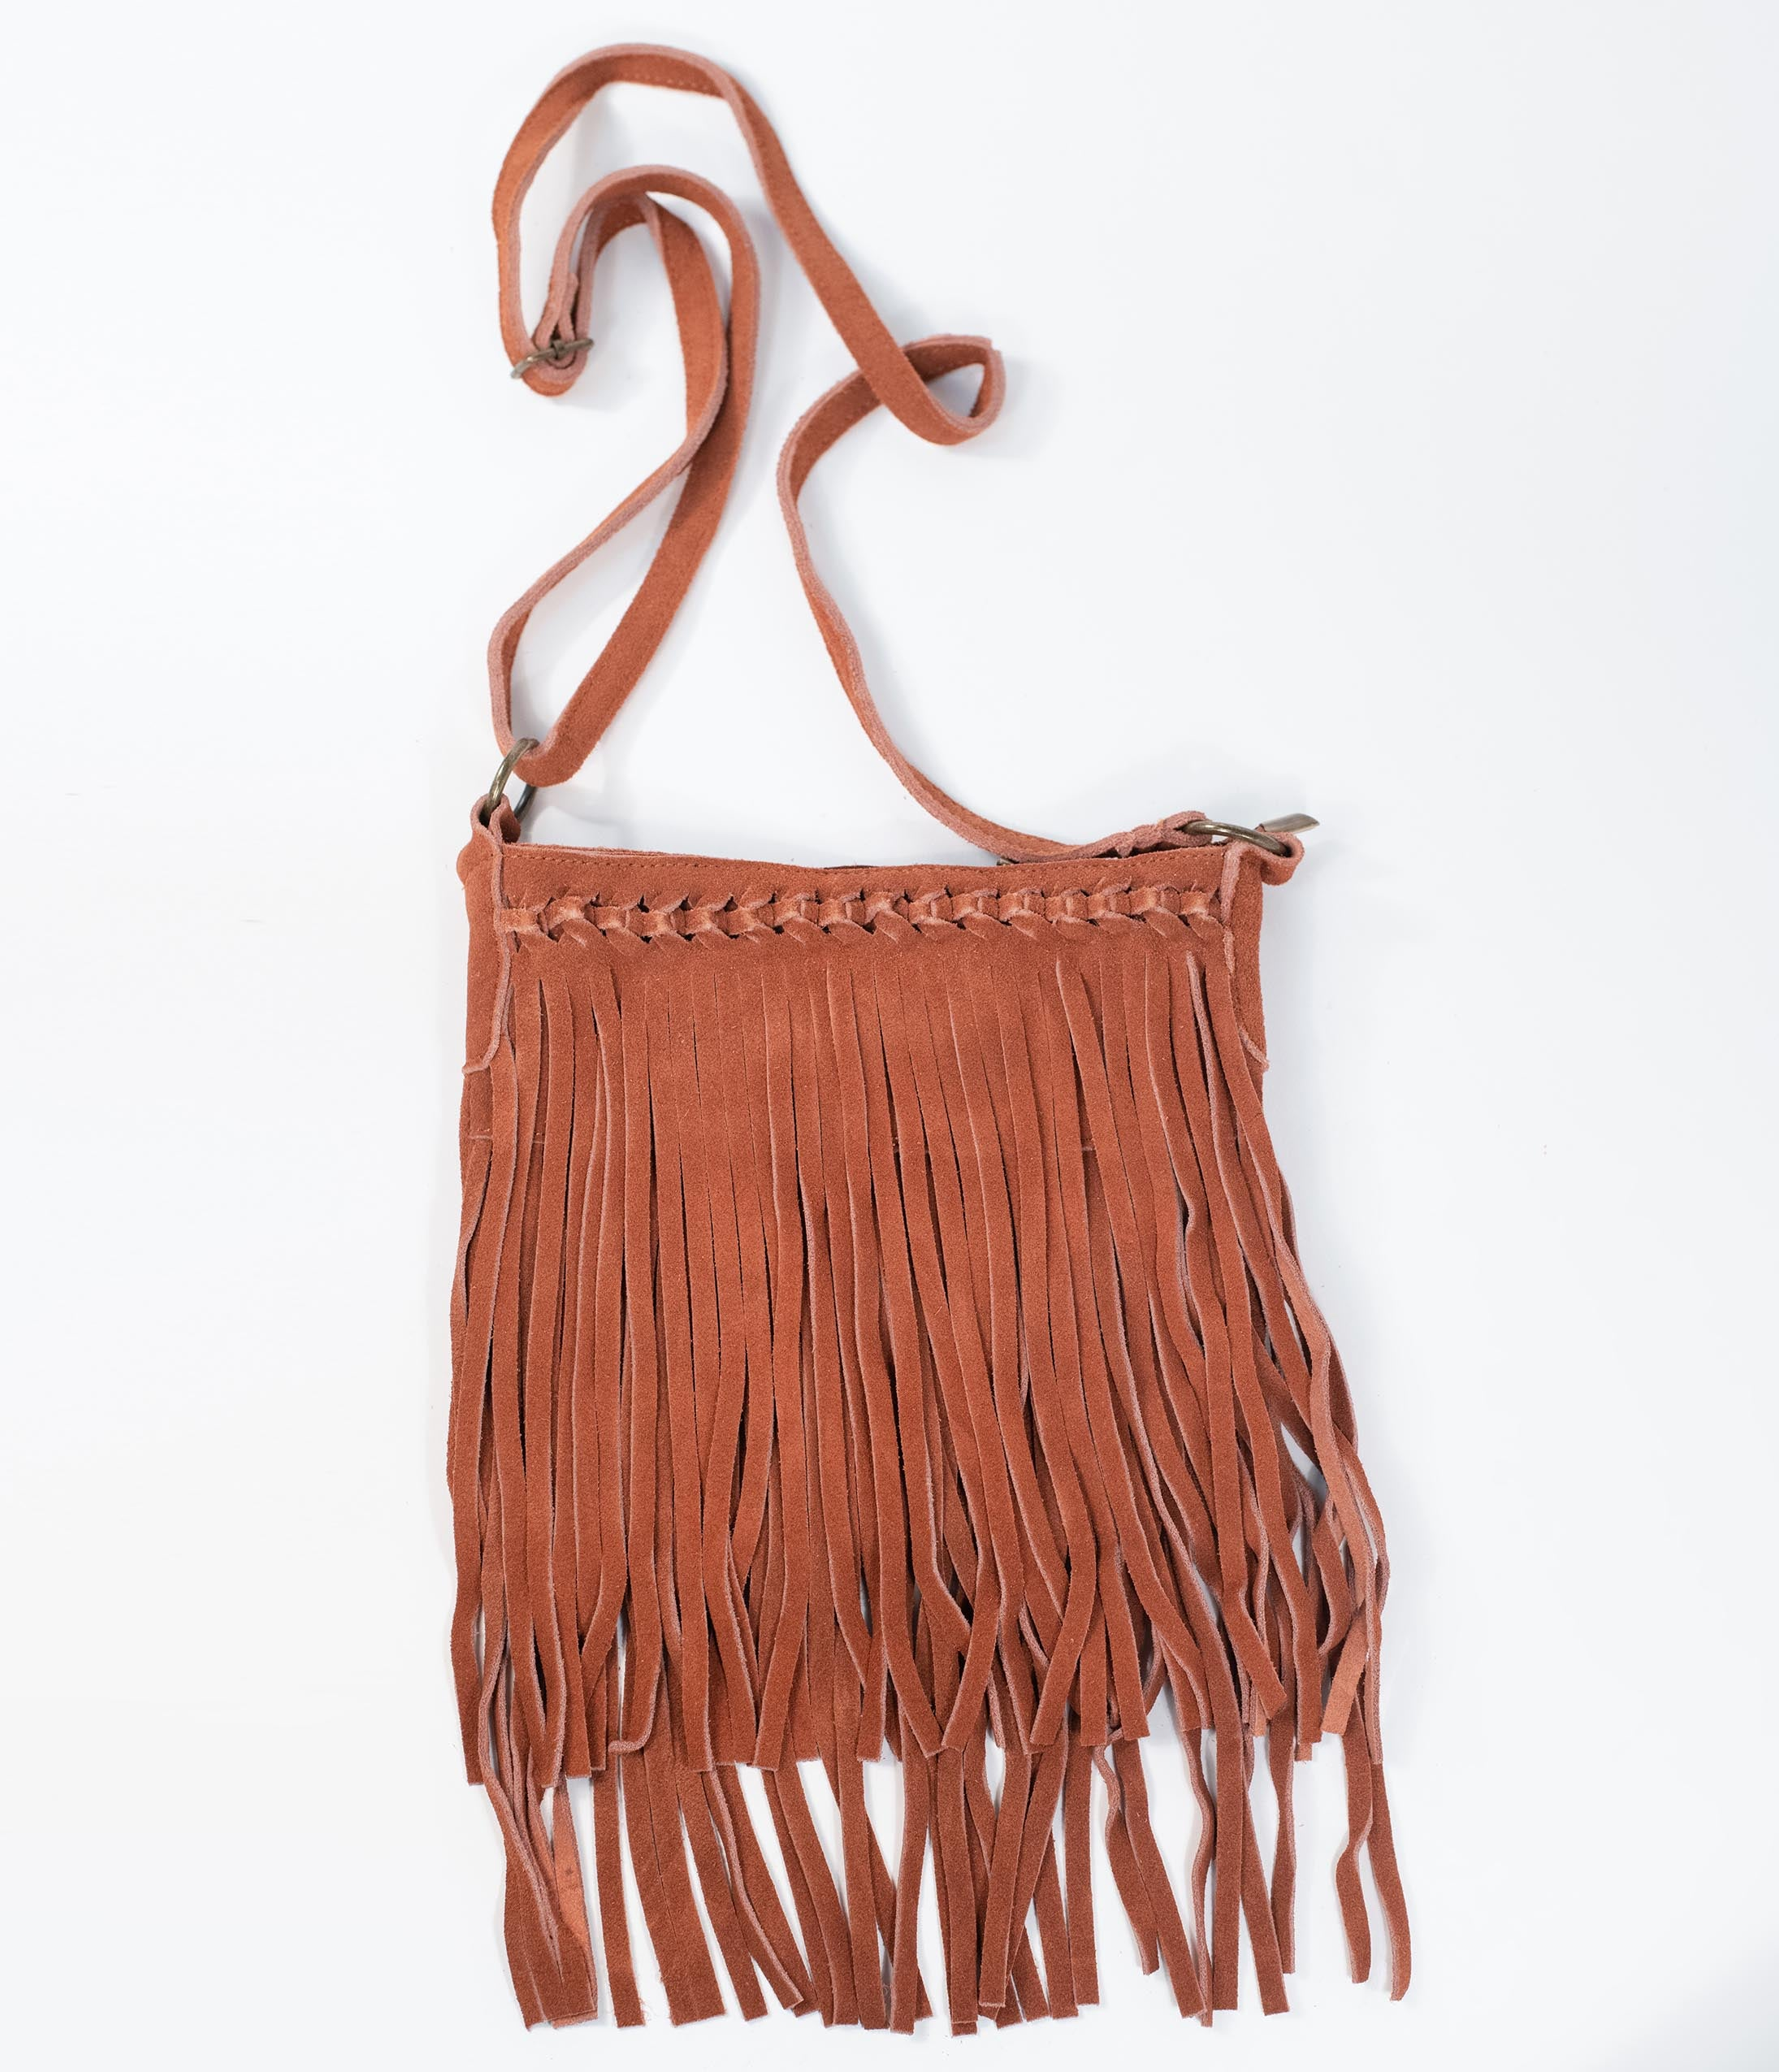 70s Fashion   What Did Women Wear in the 1970s? Camel Brown Suede Fringe Purse $48.00 AT vintagedancer.com